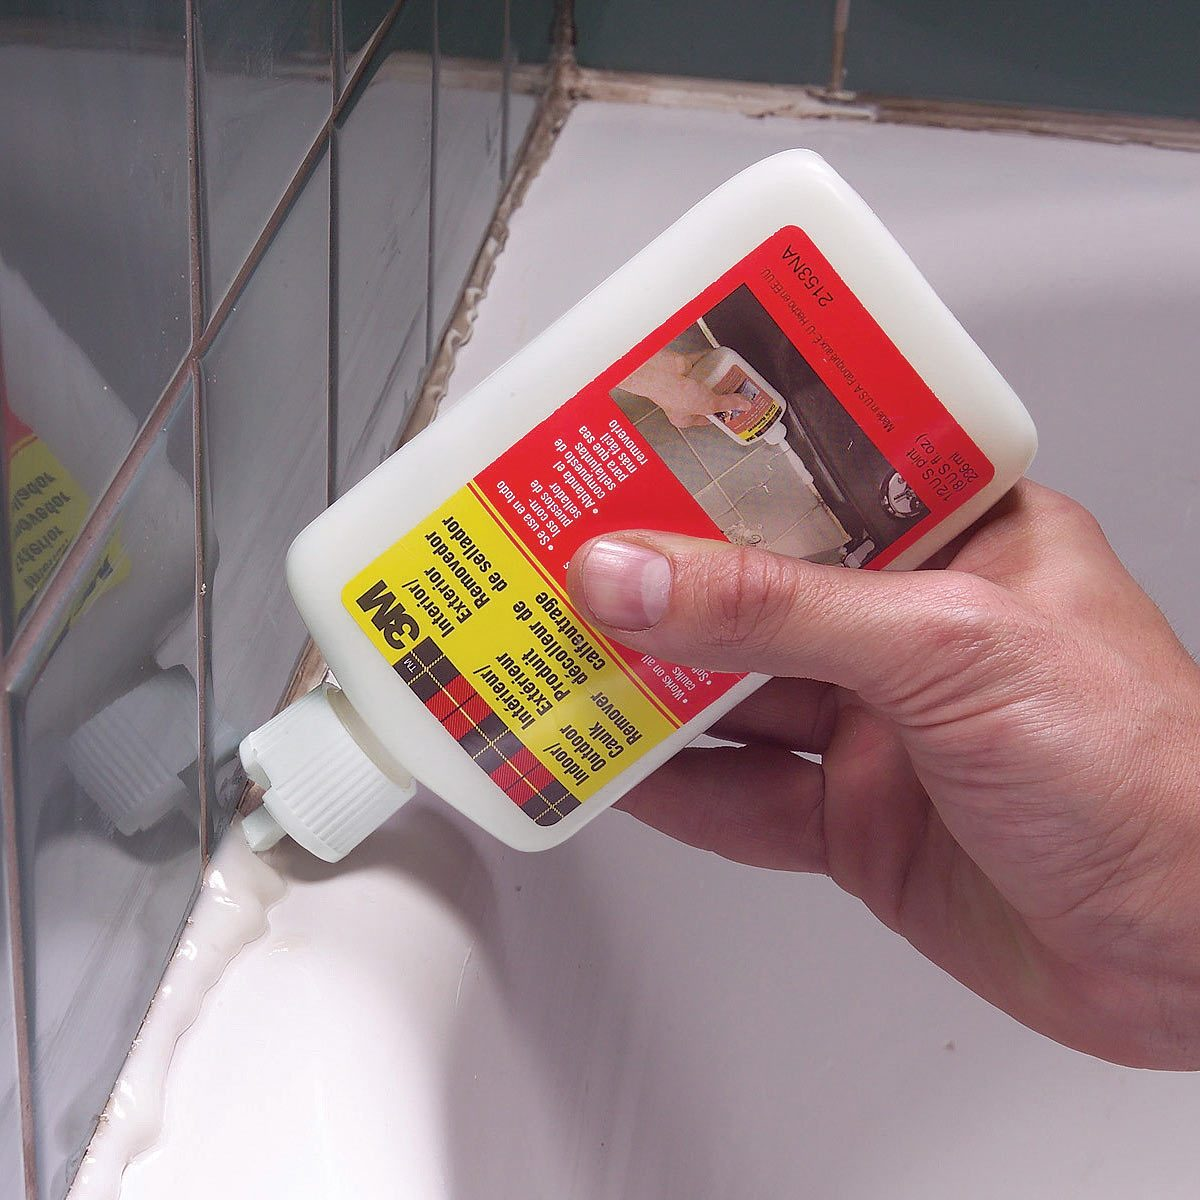 remove caulk from the tub